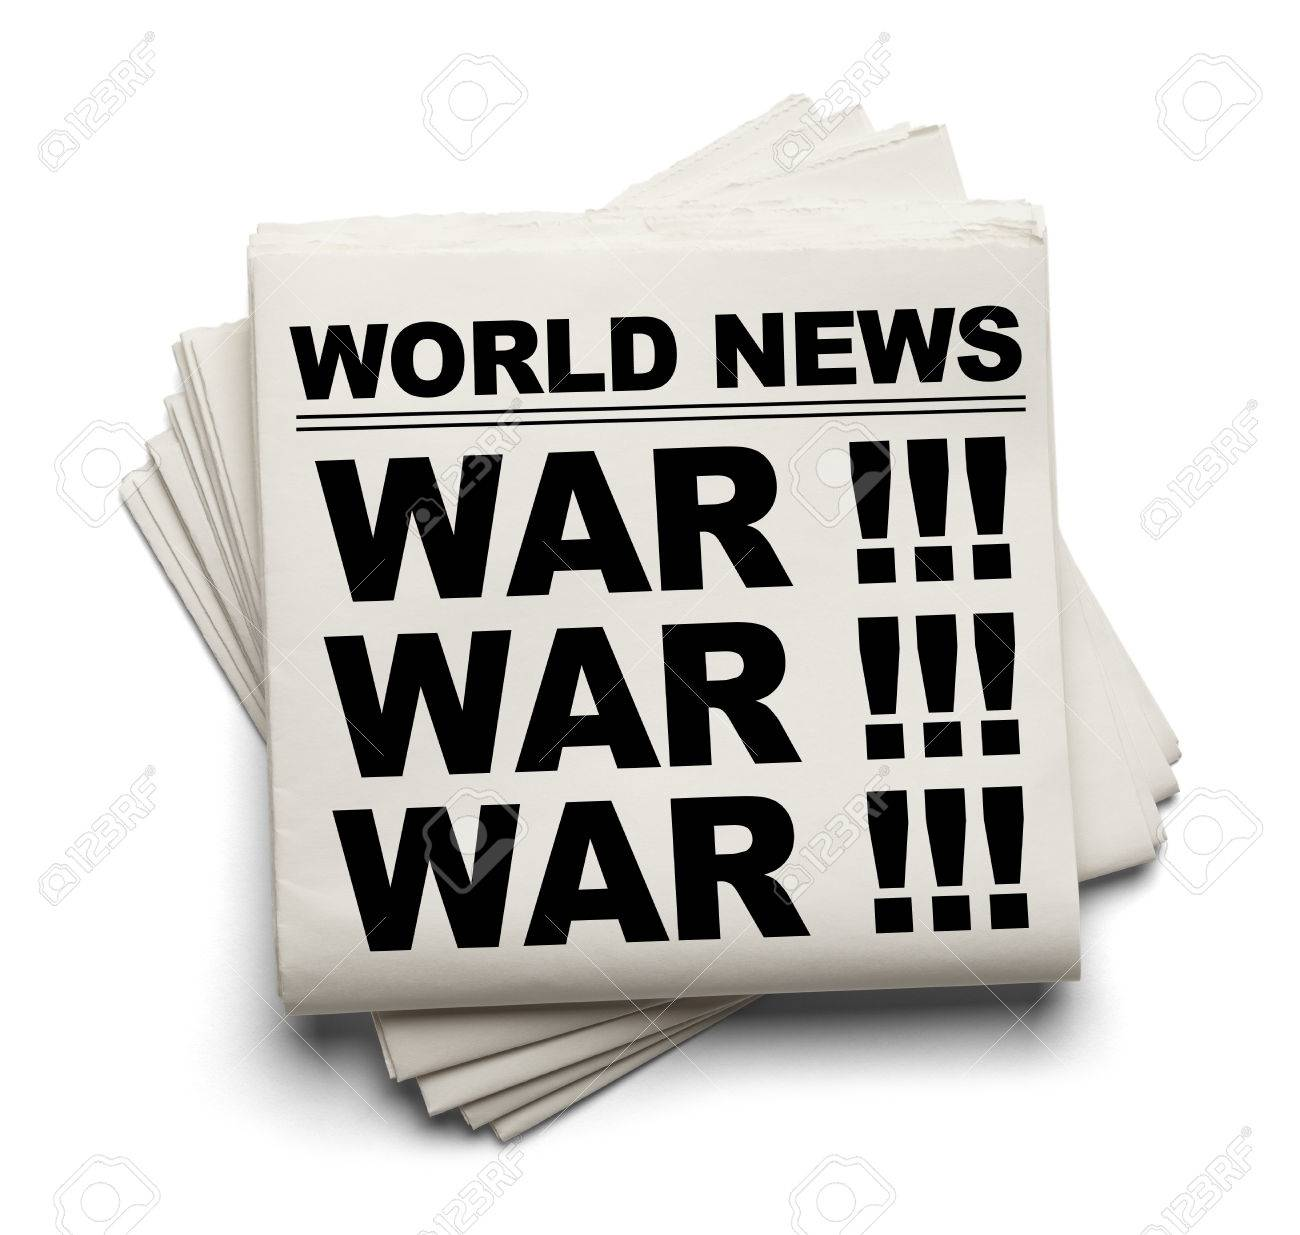 https://previews.123rf.com/images/pixelrobot/pixelrobot1504/pixelrobot150401830/38286938-world-news-paper-headline-war-isolated-on-white-background-.jpg